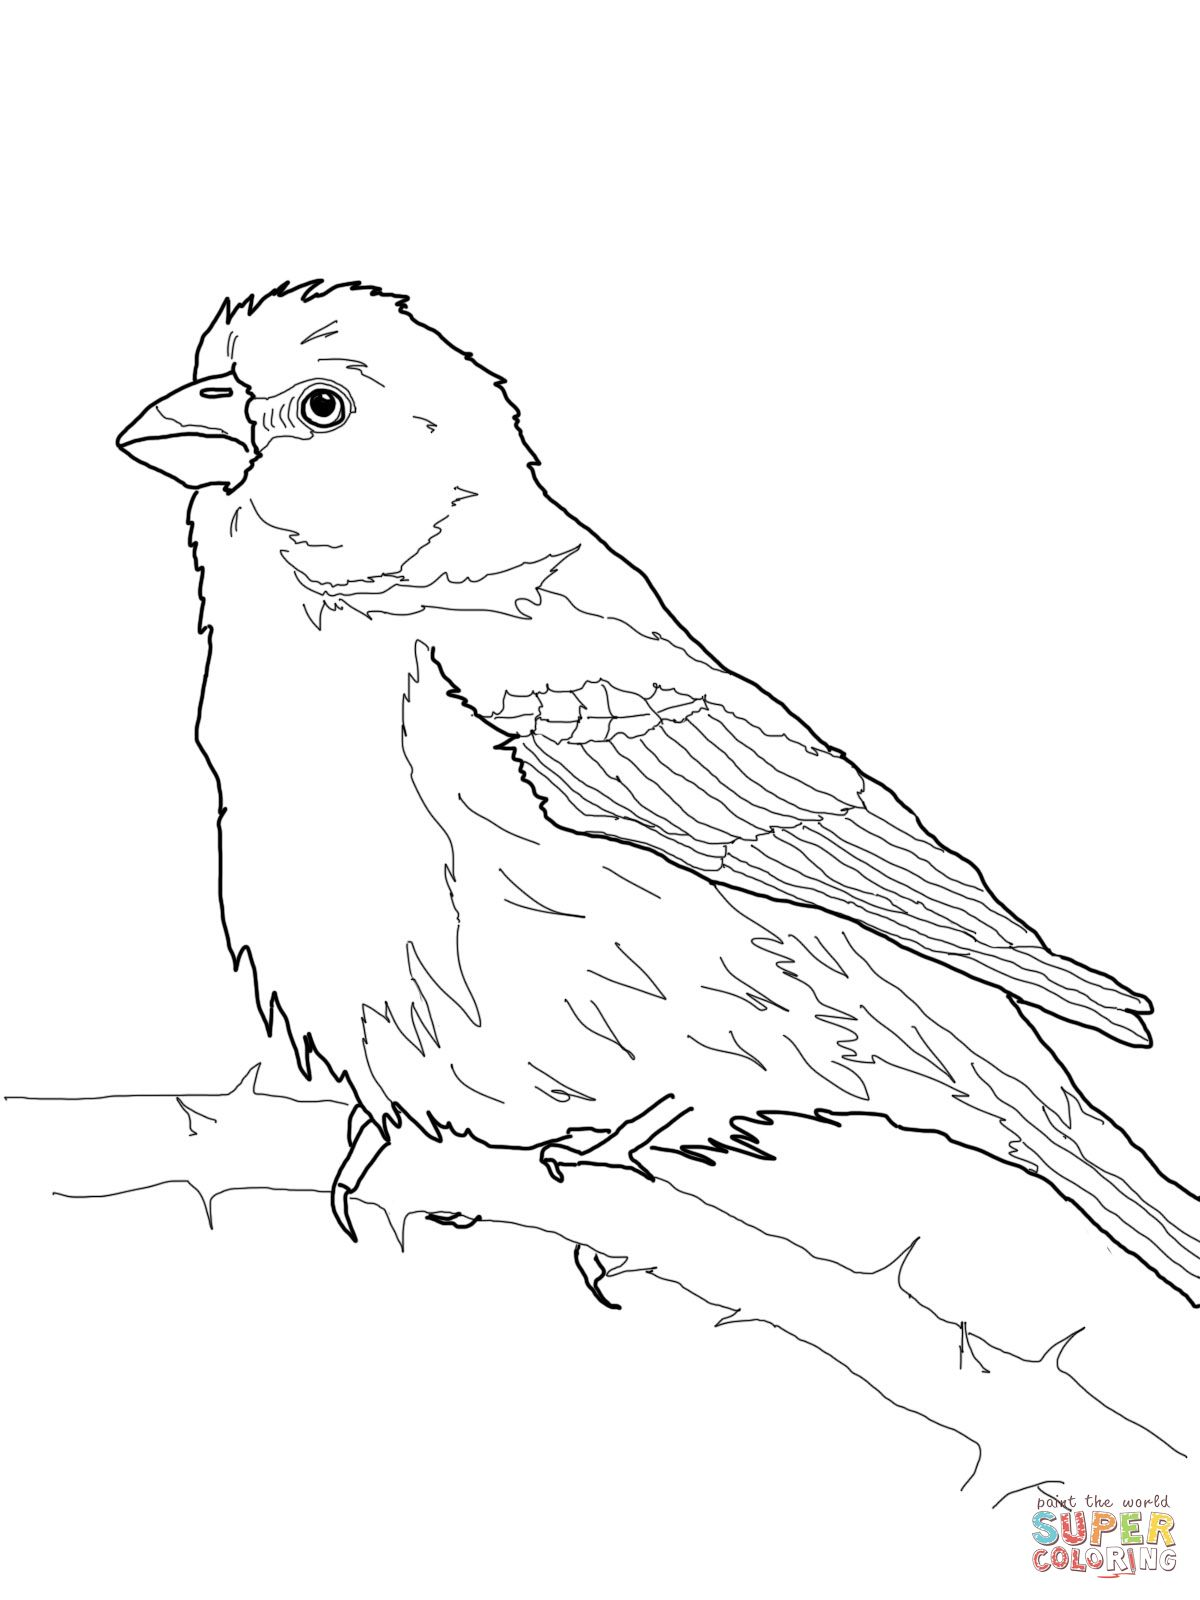 House Finch Coloring Page Supercoloring Com With Images